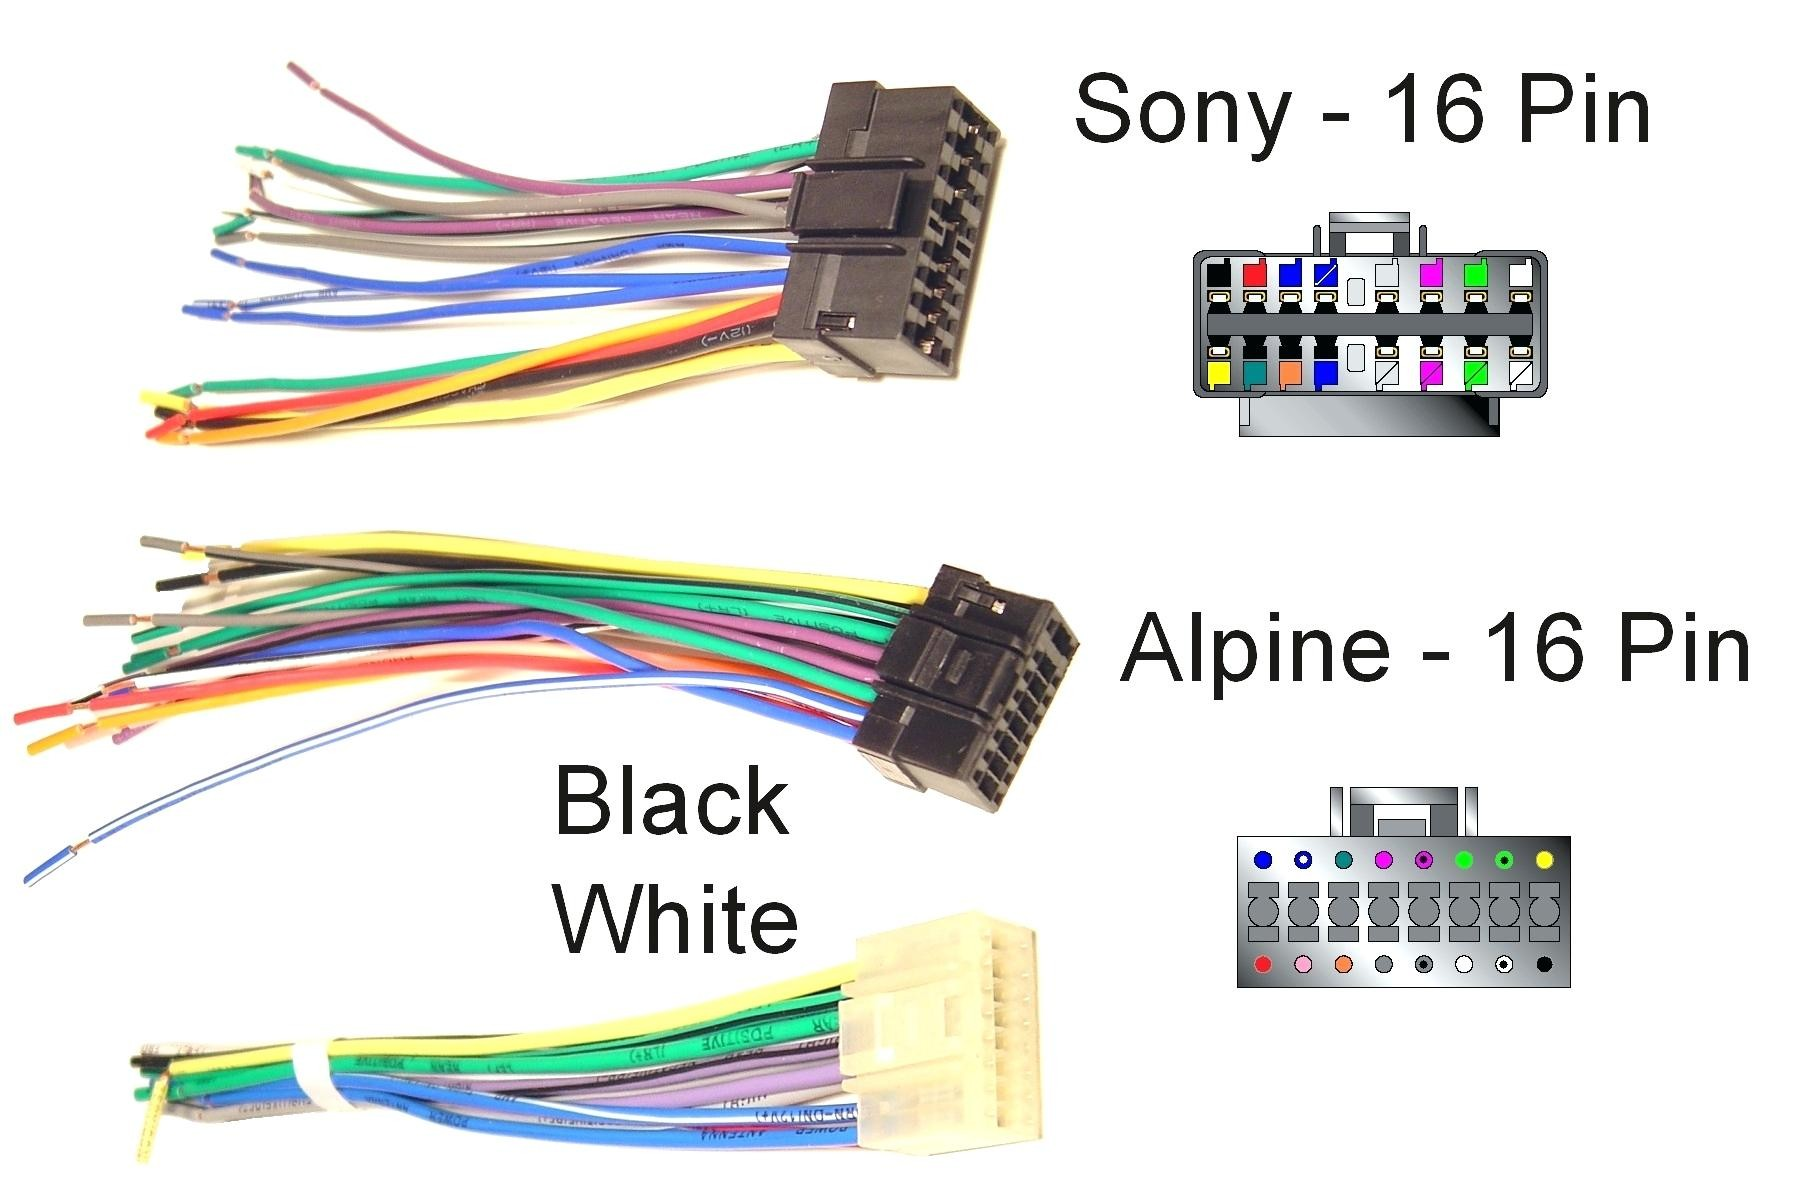 Alpine Car Stereo Wiring Diagram Kenwood Home Perfect With Additional For A Of